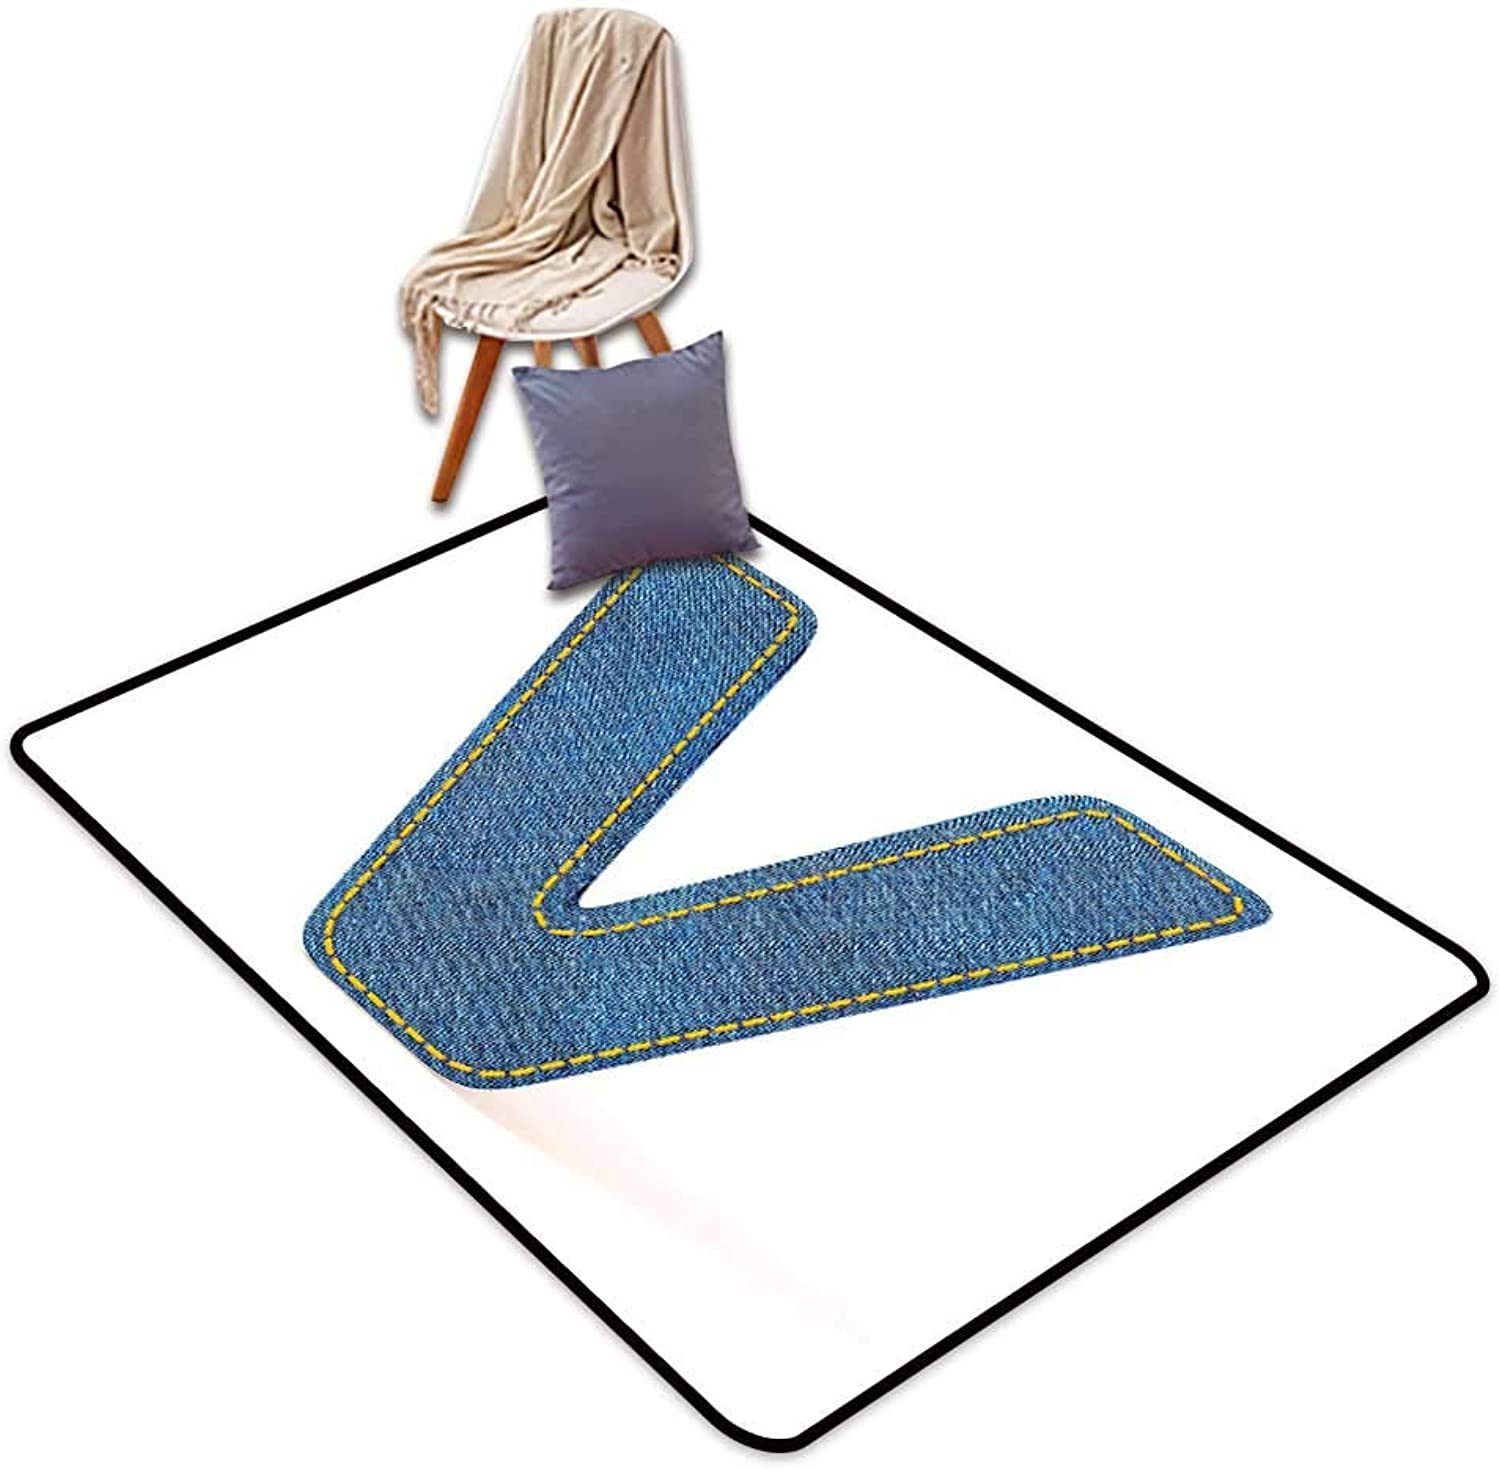 Indoor Super Absorbs Mud Doormat Letter V Clothing Fashion Style Theme with Majuscule V Alphabet Symbol Modern Collection W6'xL7' Suitable for Family